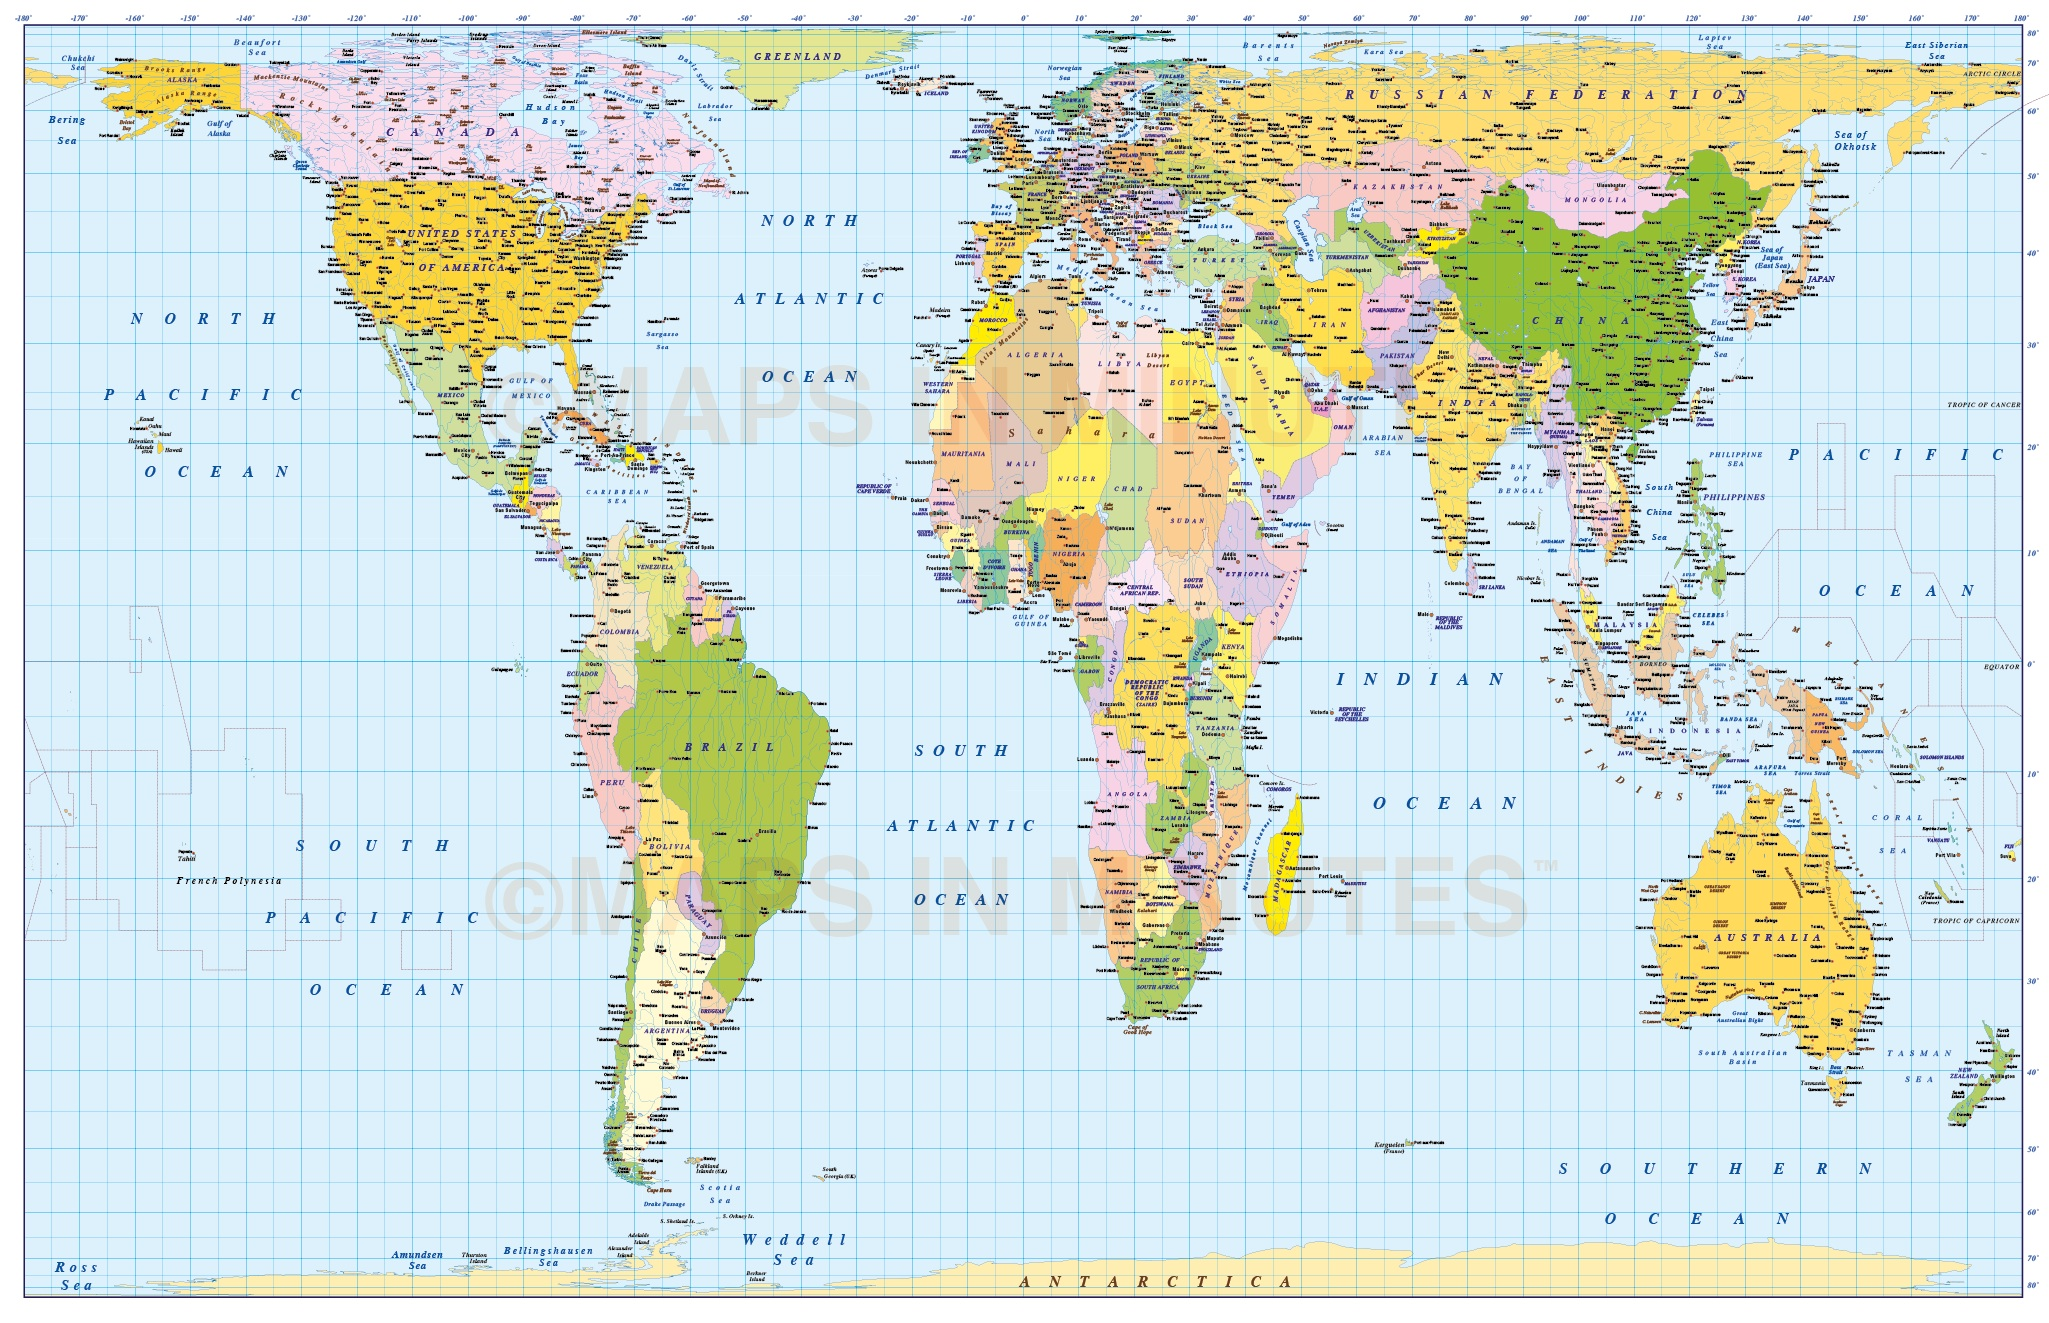 Gall Peters Projection World Map.Medium Scale Digital Vector World Map In Gall Orthographic